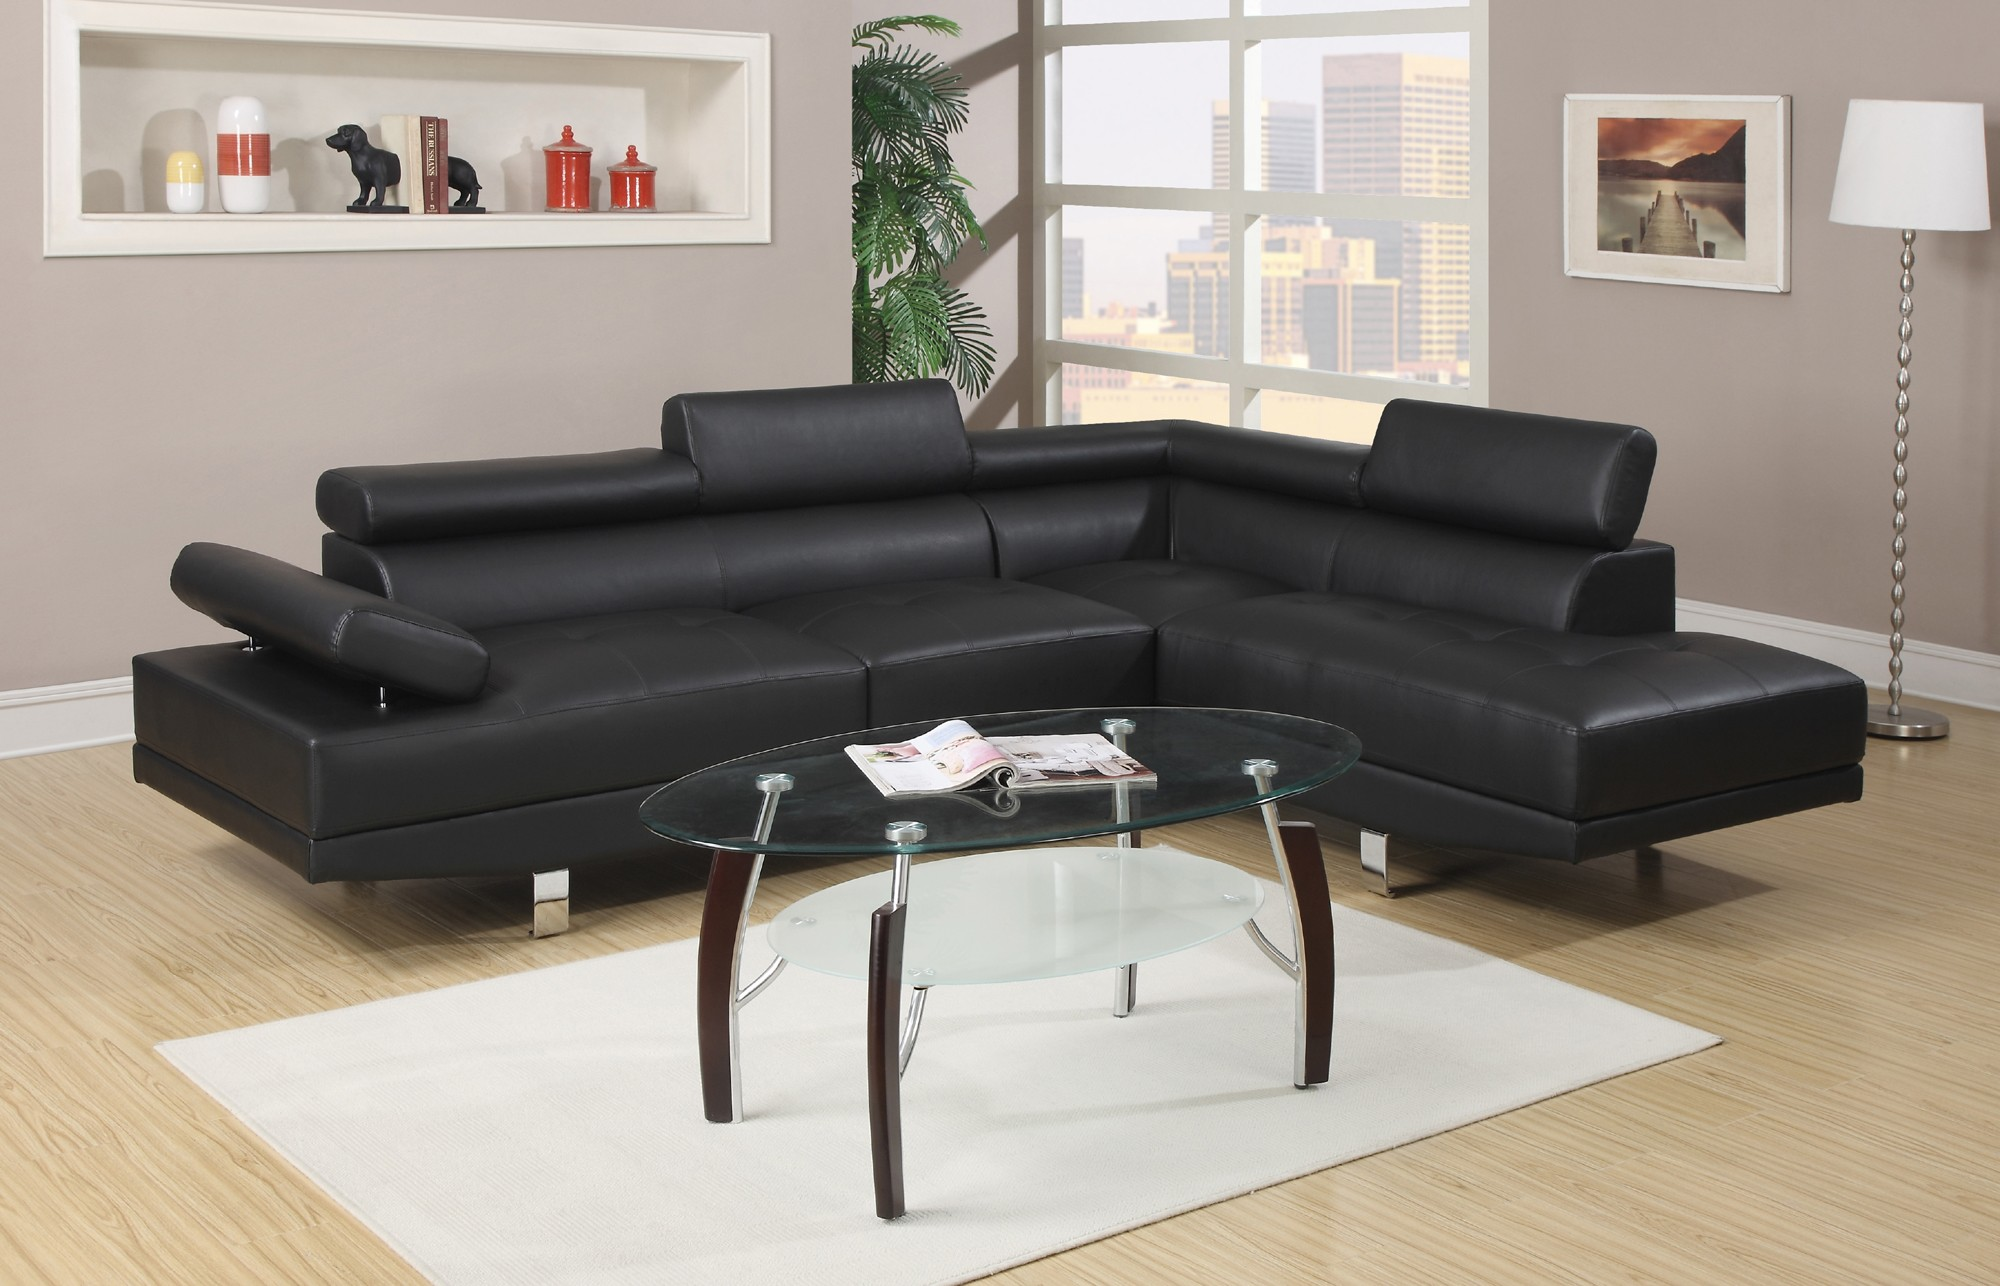 Extraordinary black leather sectional for elegant living room design with black leather sectional sofa